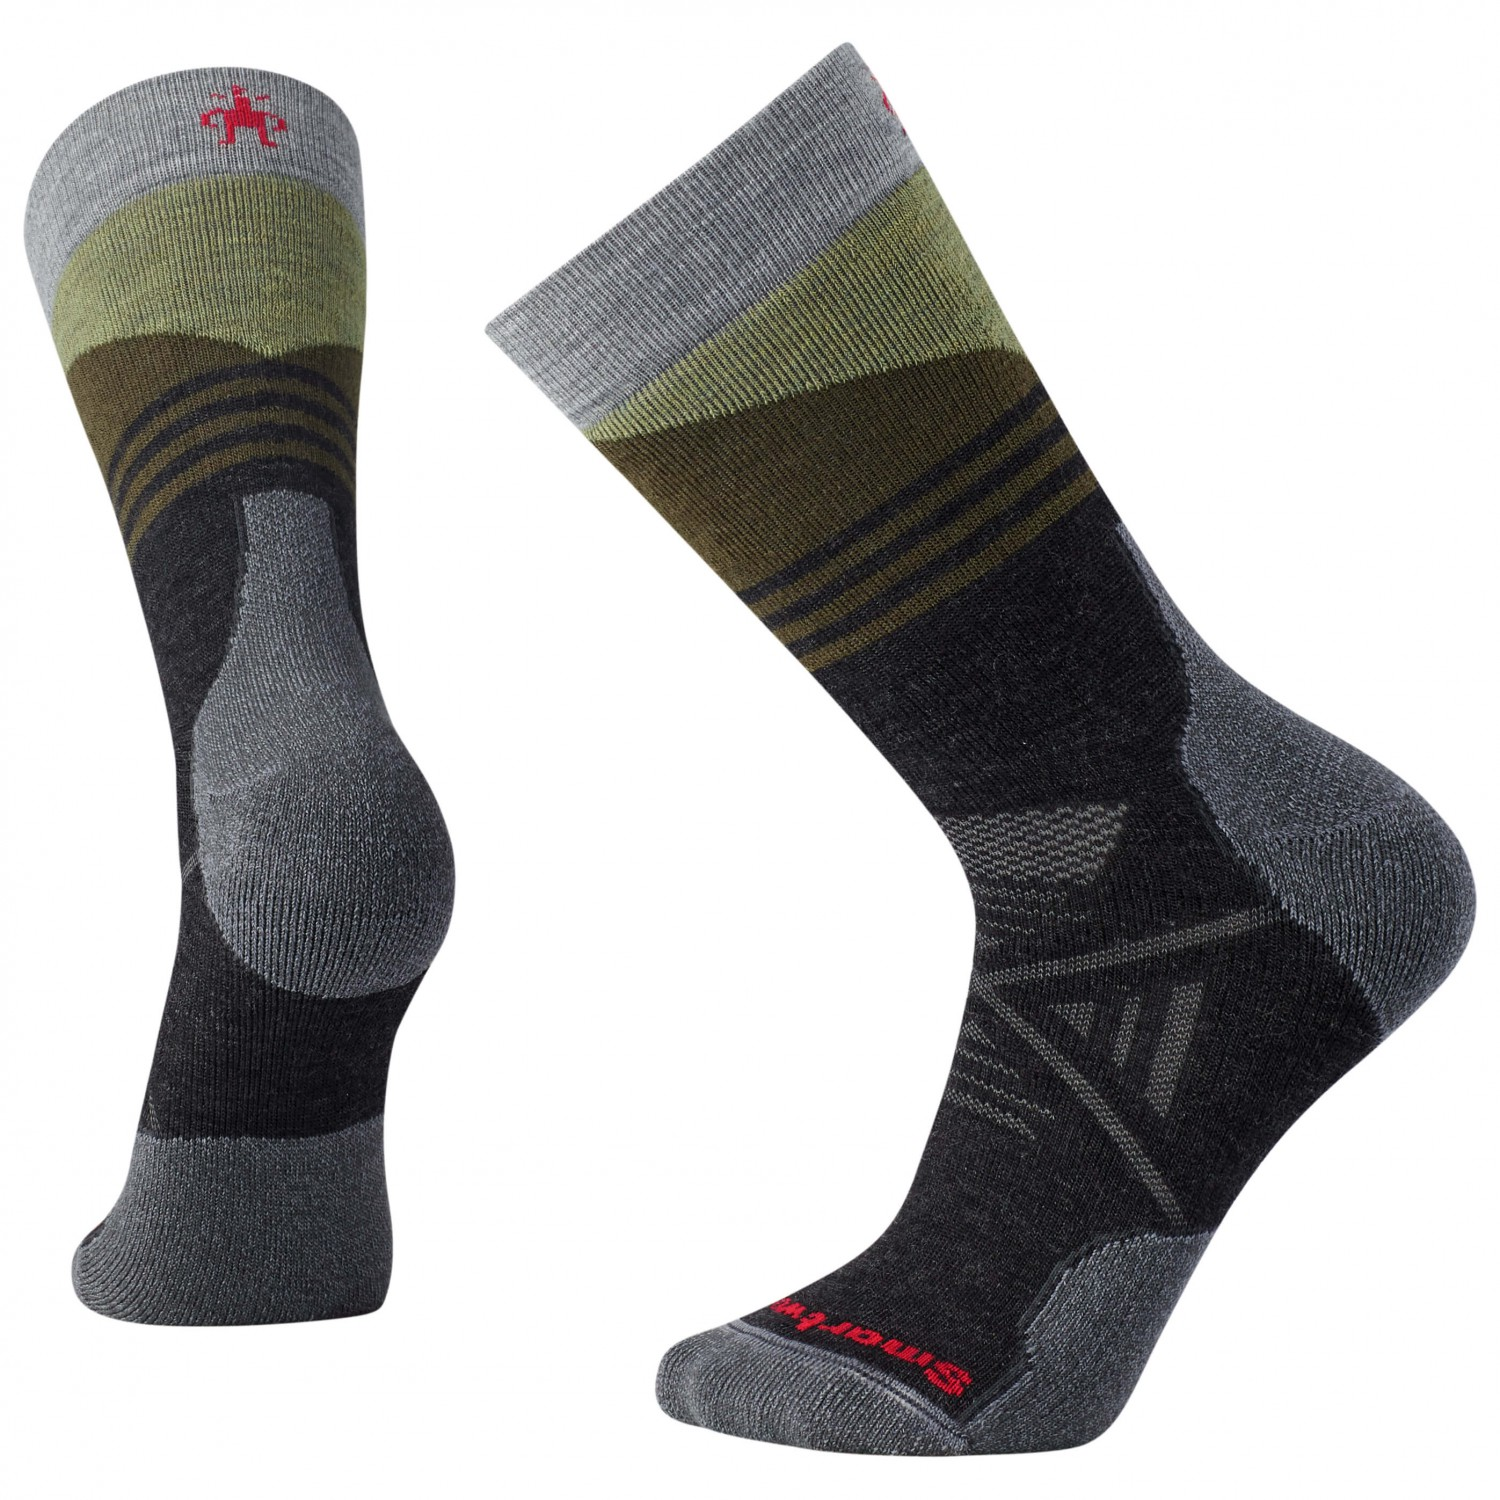 Smartwool - PhD Outdoor Medium Pattern Crew - Trekkingsocken Charcoal